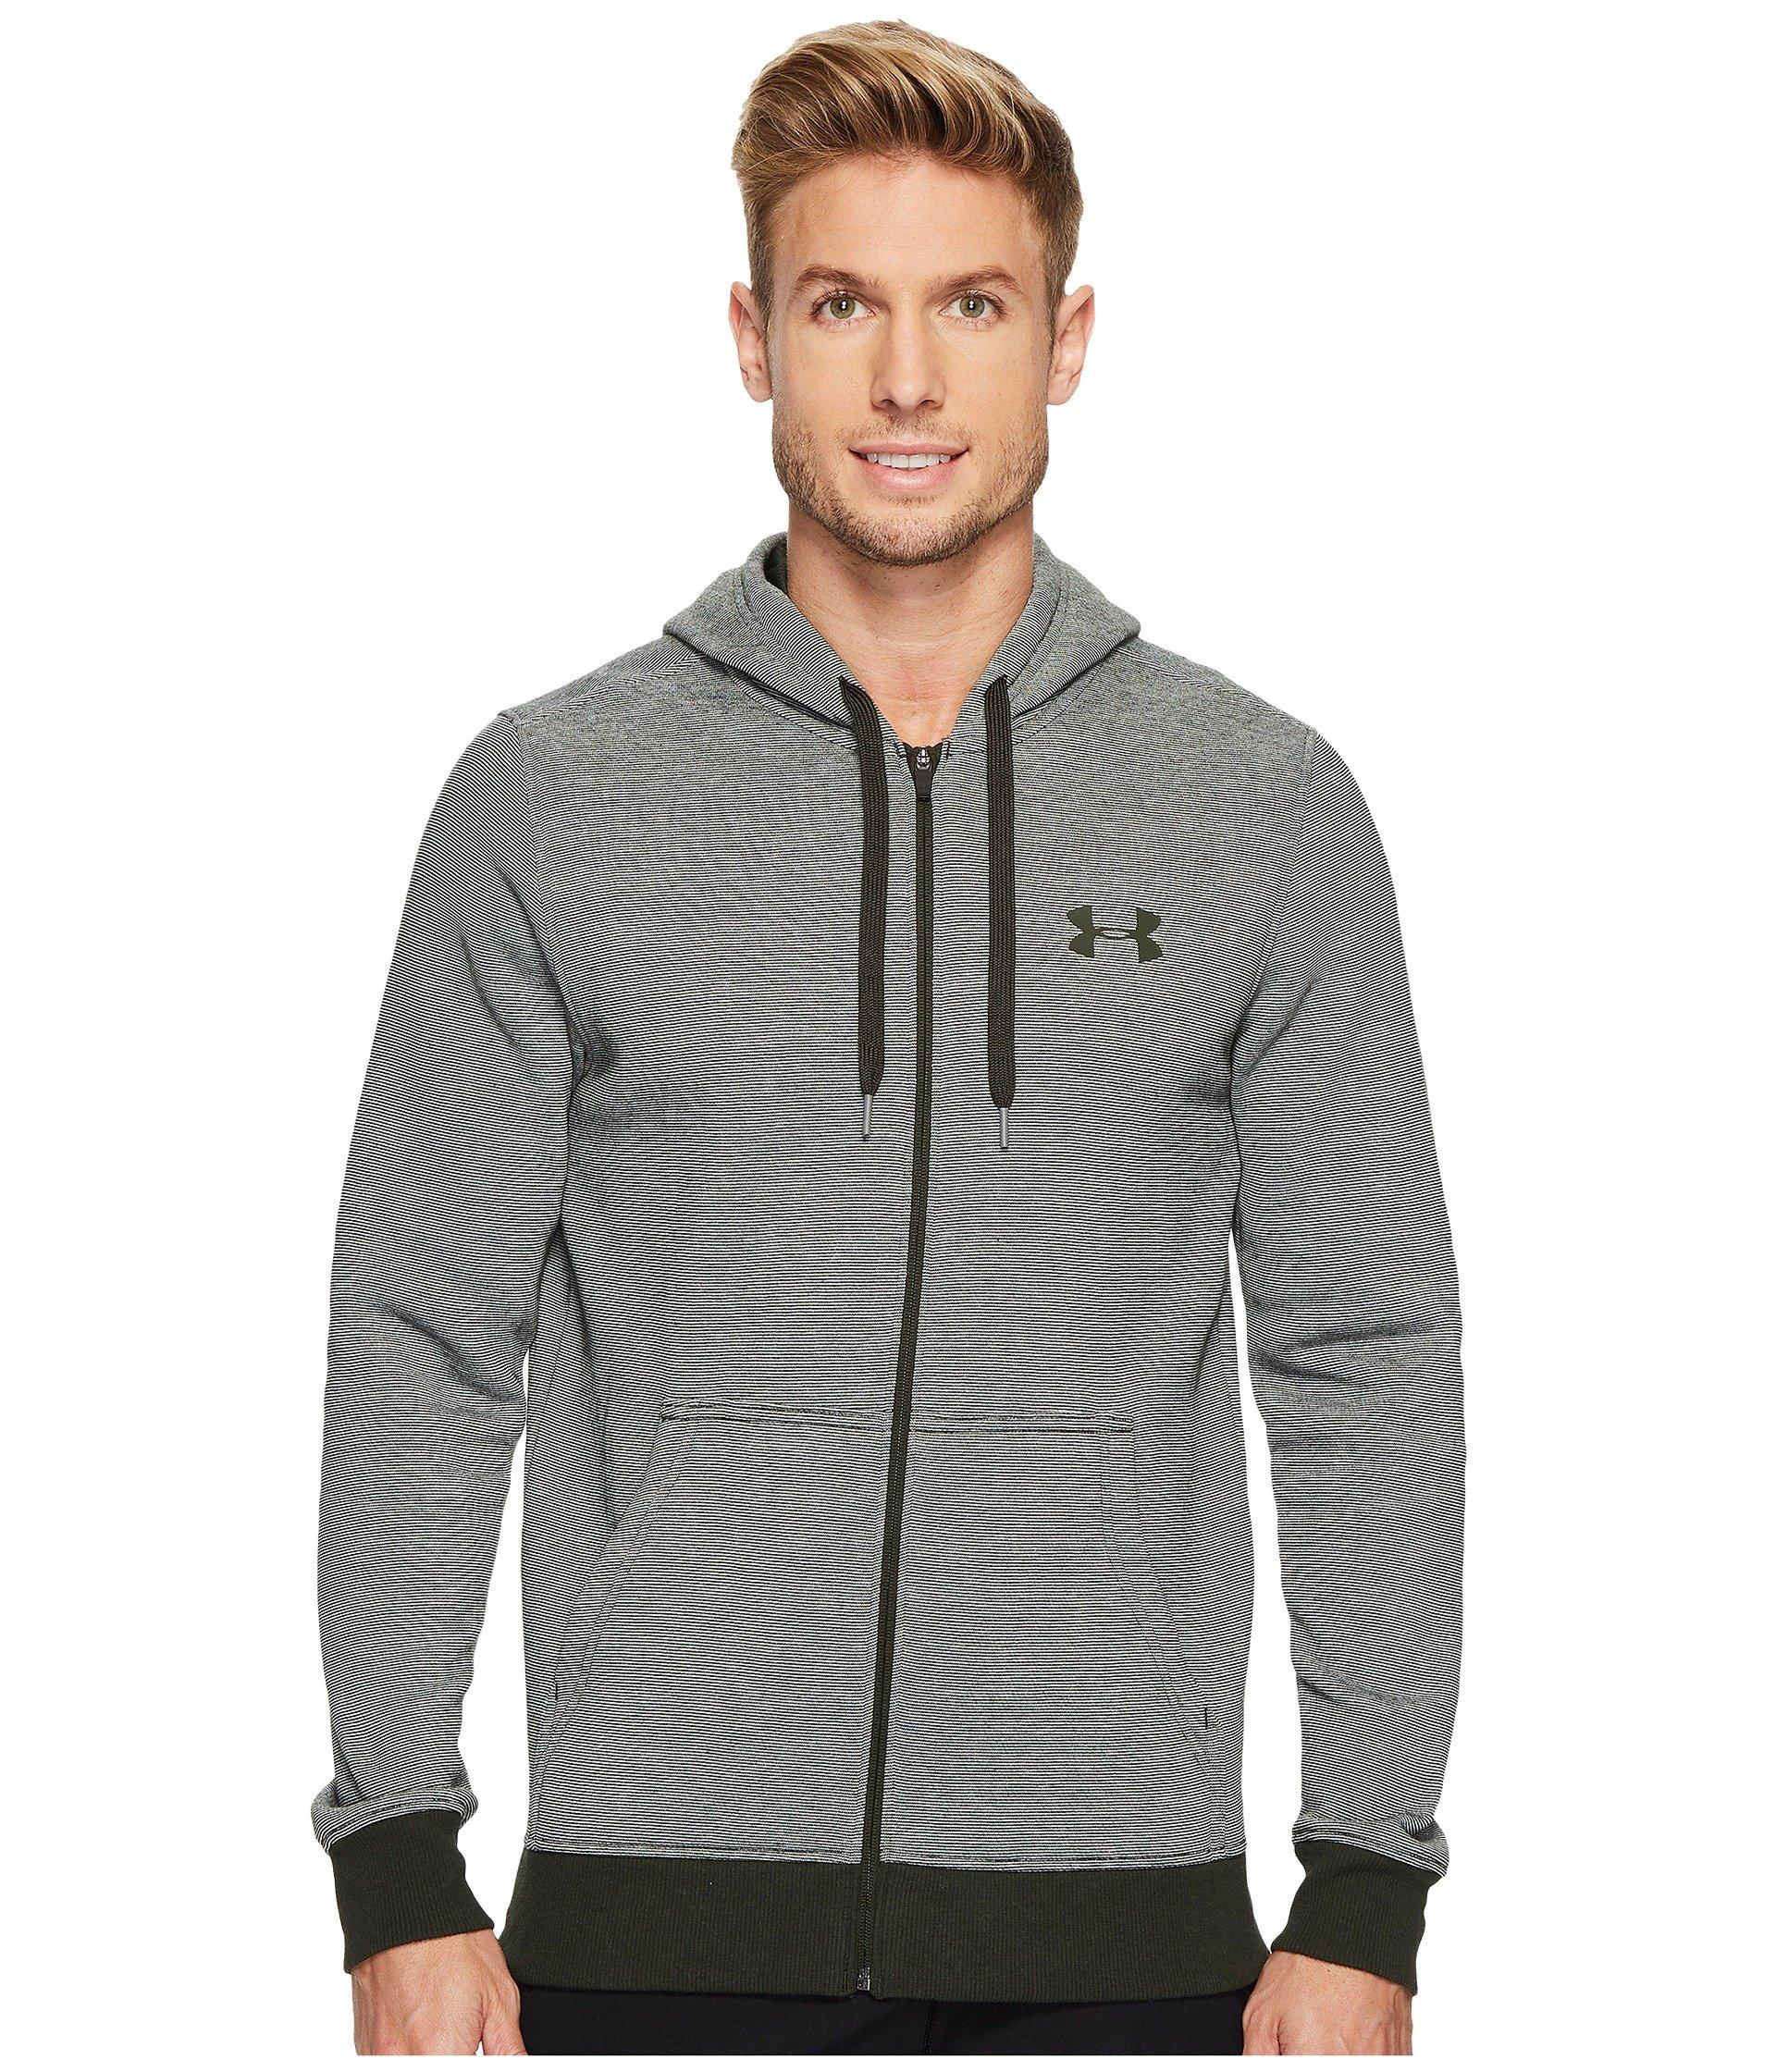 Under Armour Rival Eoe Fitted Full Zip In Artillery Green/artillery Green/artillery Green